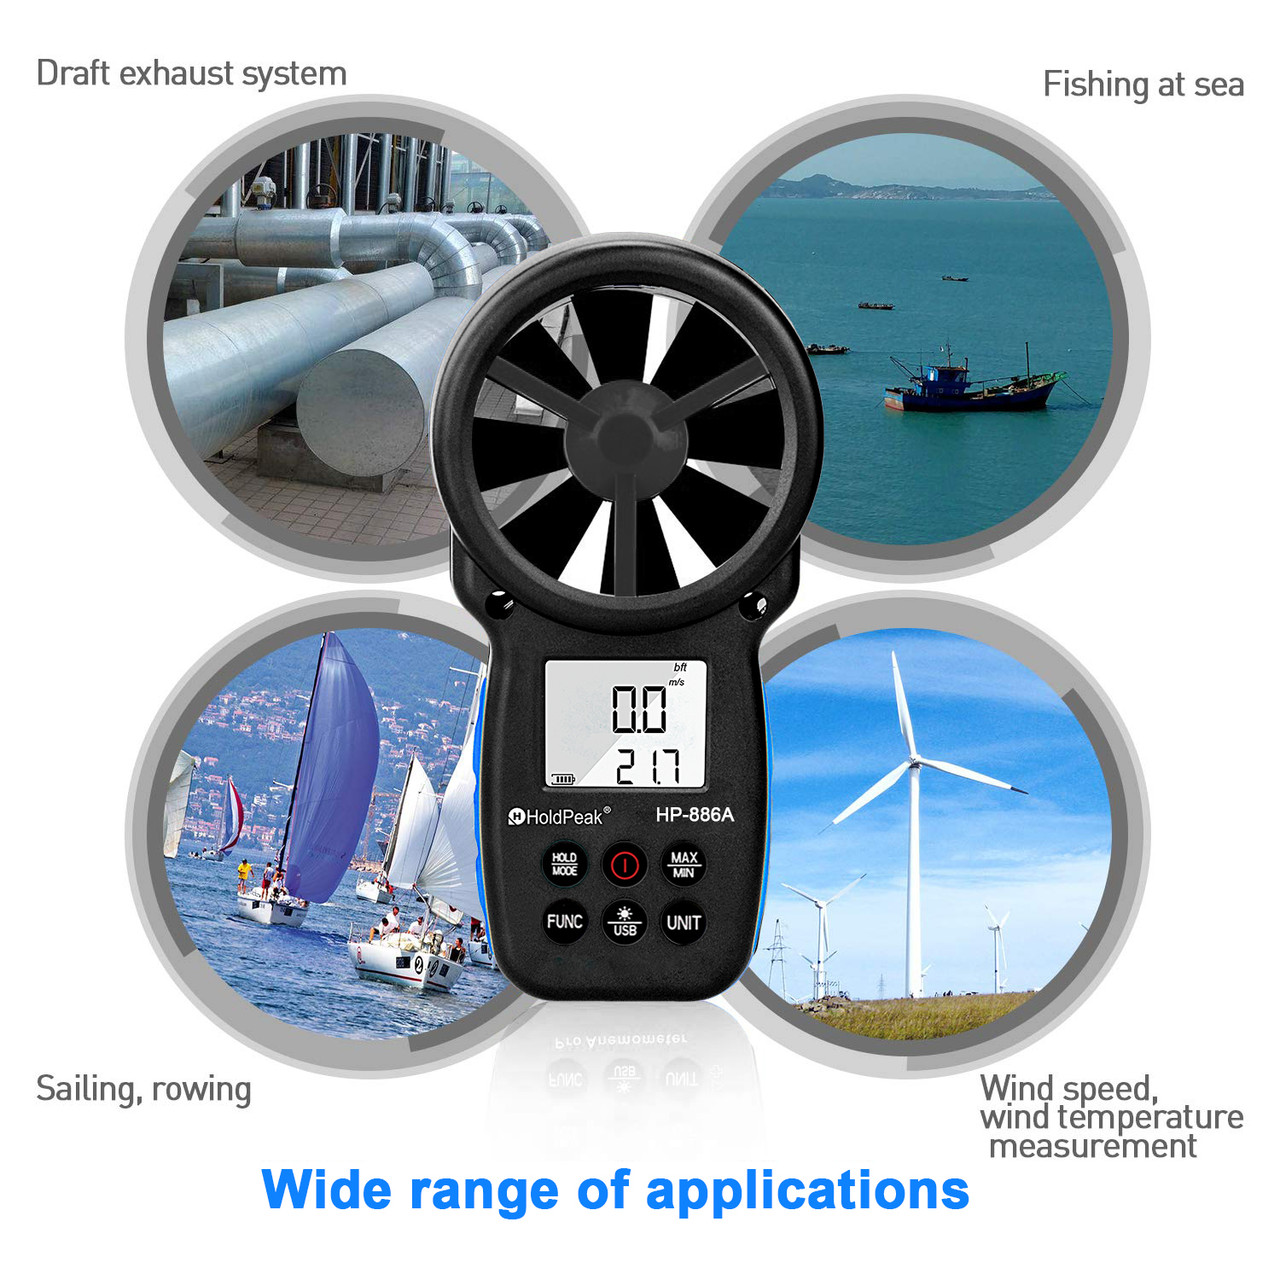 HP-866A Digital Anemometer Handheld CFM Meter with USB Connect - Wind Speed  Meter Measures Wind Speed + Temperature + Dew Point + Air Flow Meter with